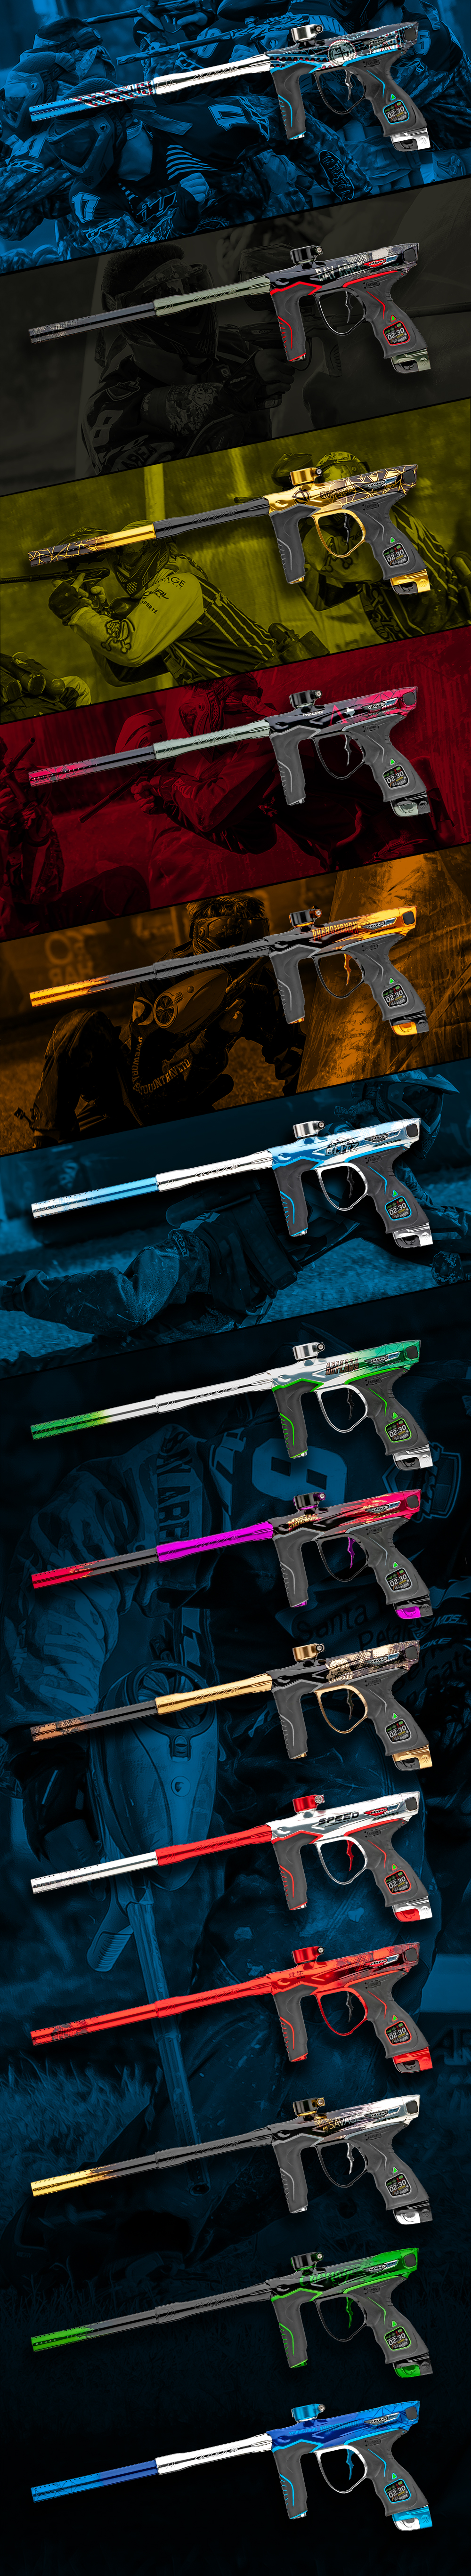 TeamGunProgram-PageGraphic-Guns-1000px